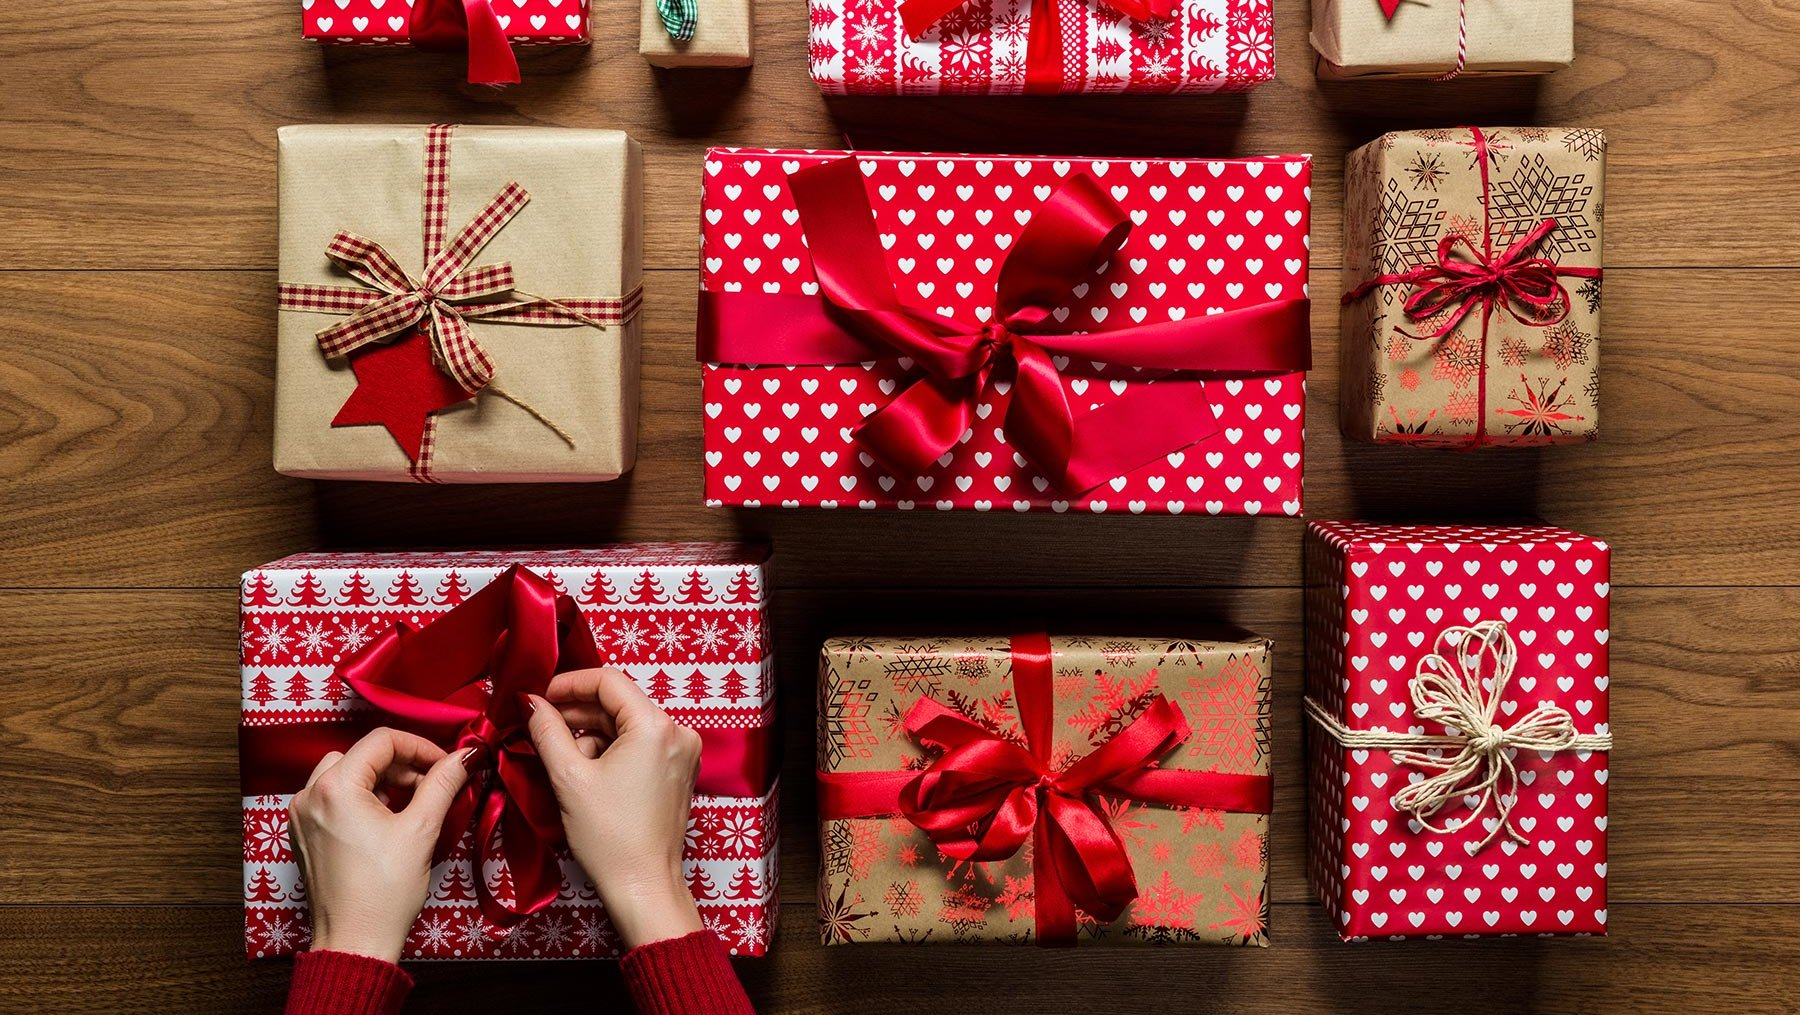 Christmas is the time for giving